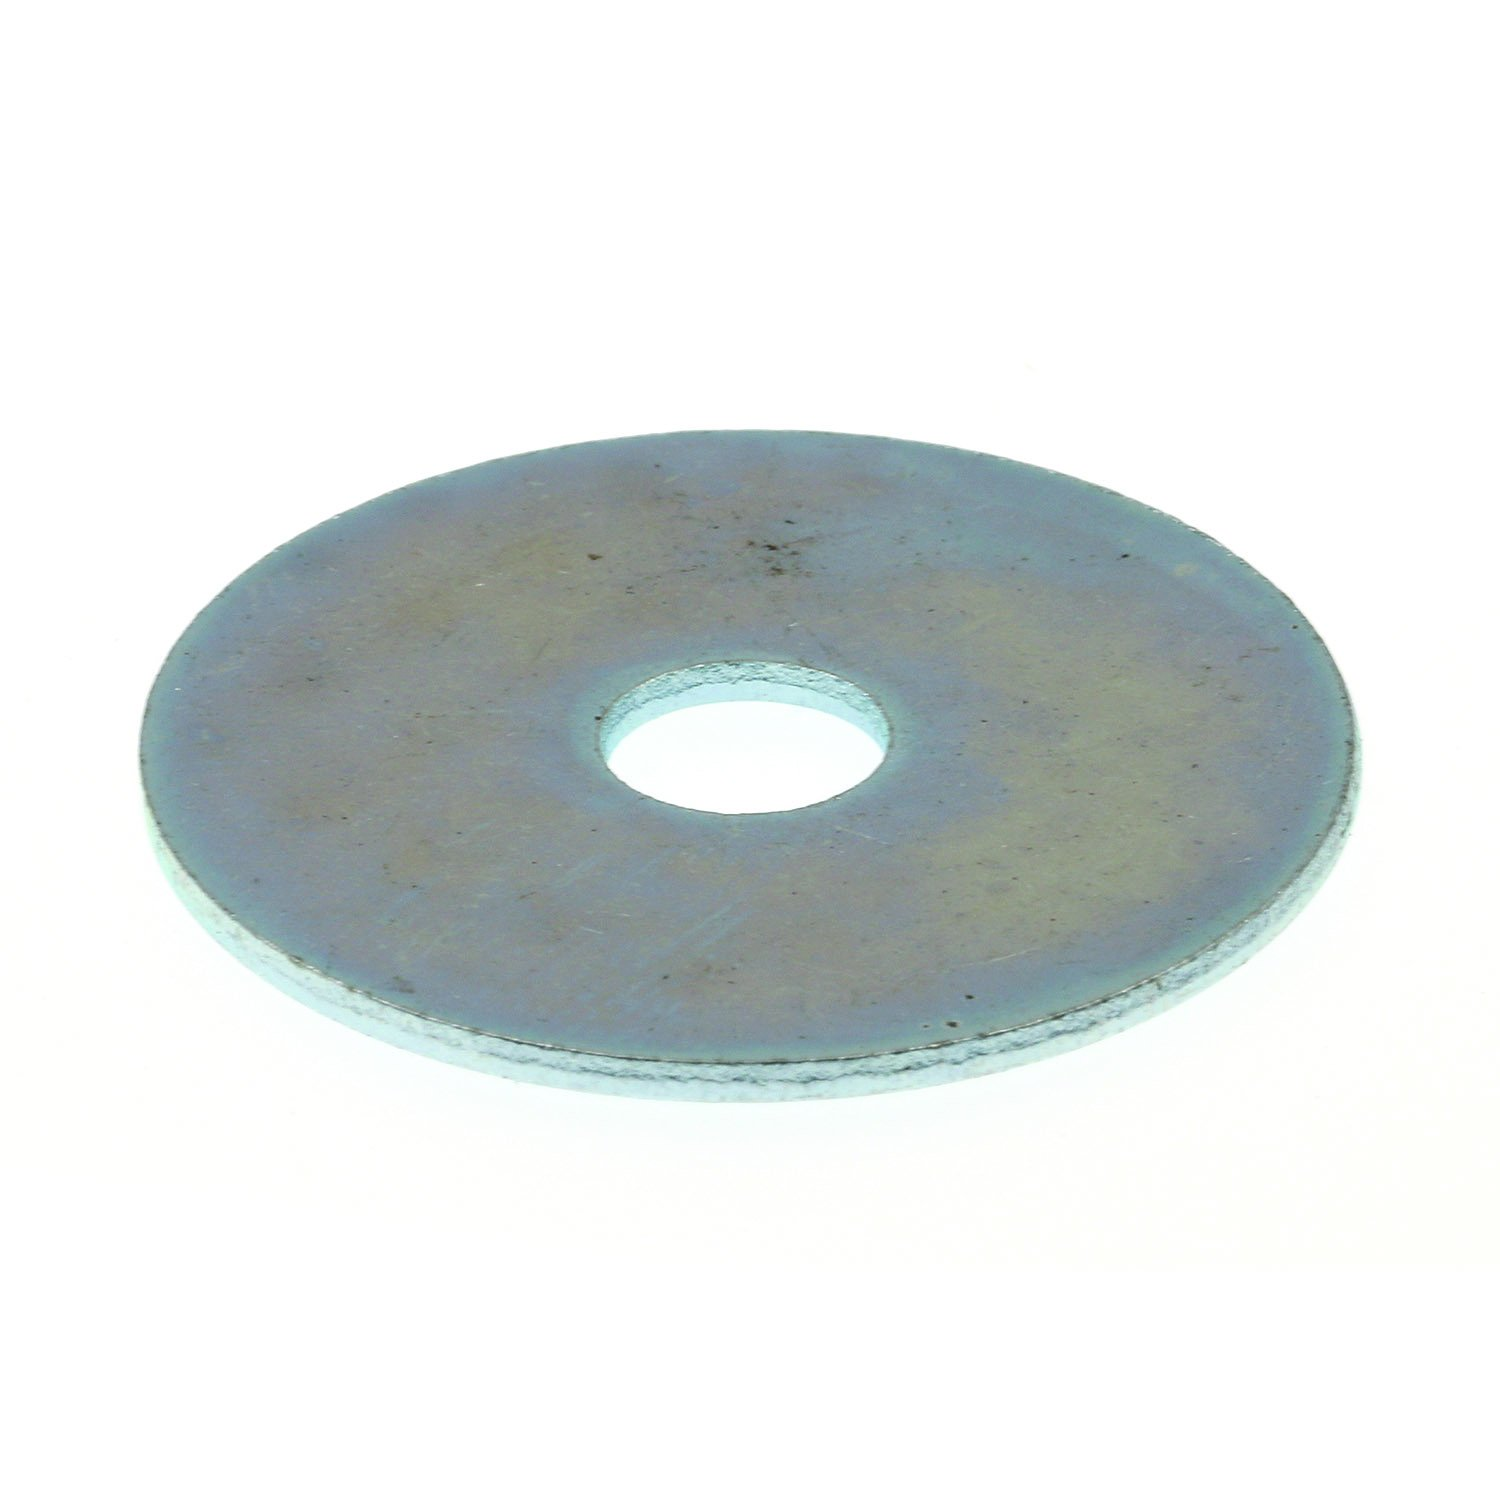 Prime-Line 9081355 Fender Washers, 1/4 in. X 1-1/4 in. OD, Zinc Plated Steel, 100-Pack